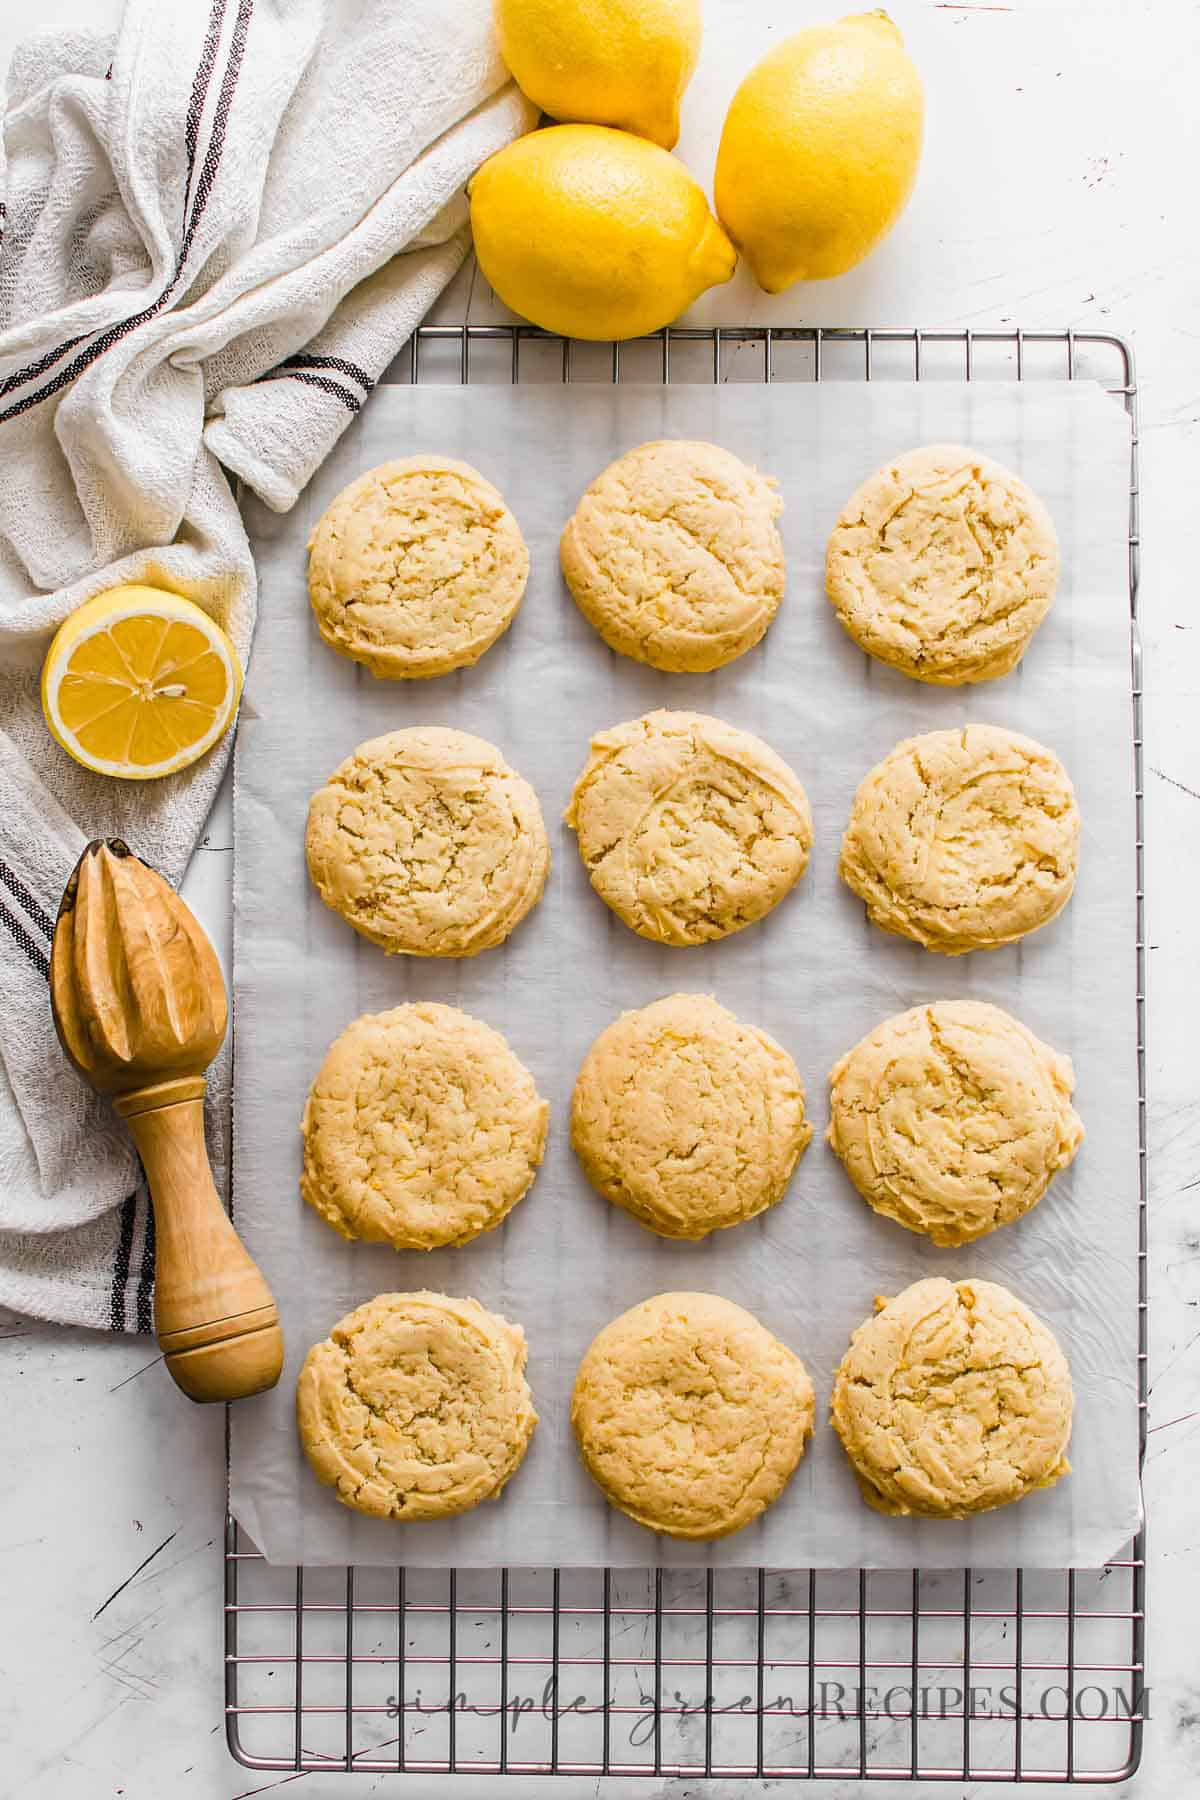 Cookies on a parchment paper over a cooling rack, surrounded by lemons, a dish towel and a wooden squeezer.